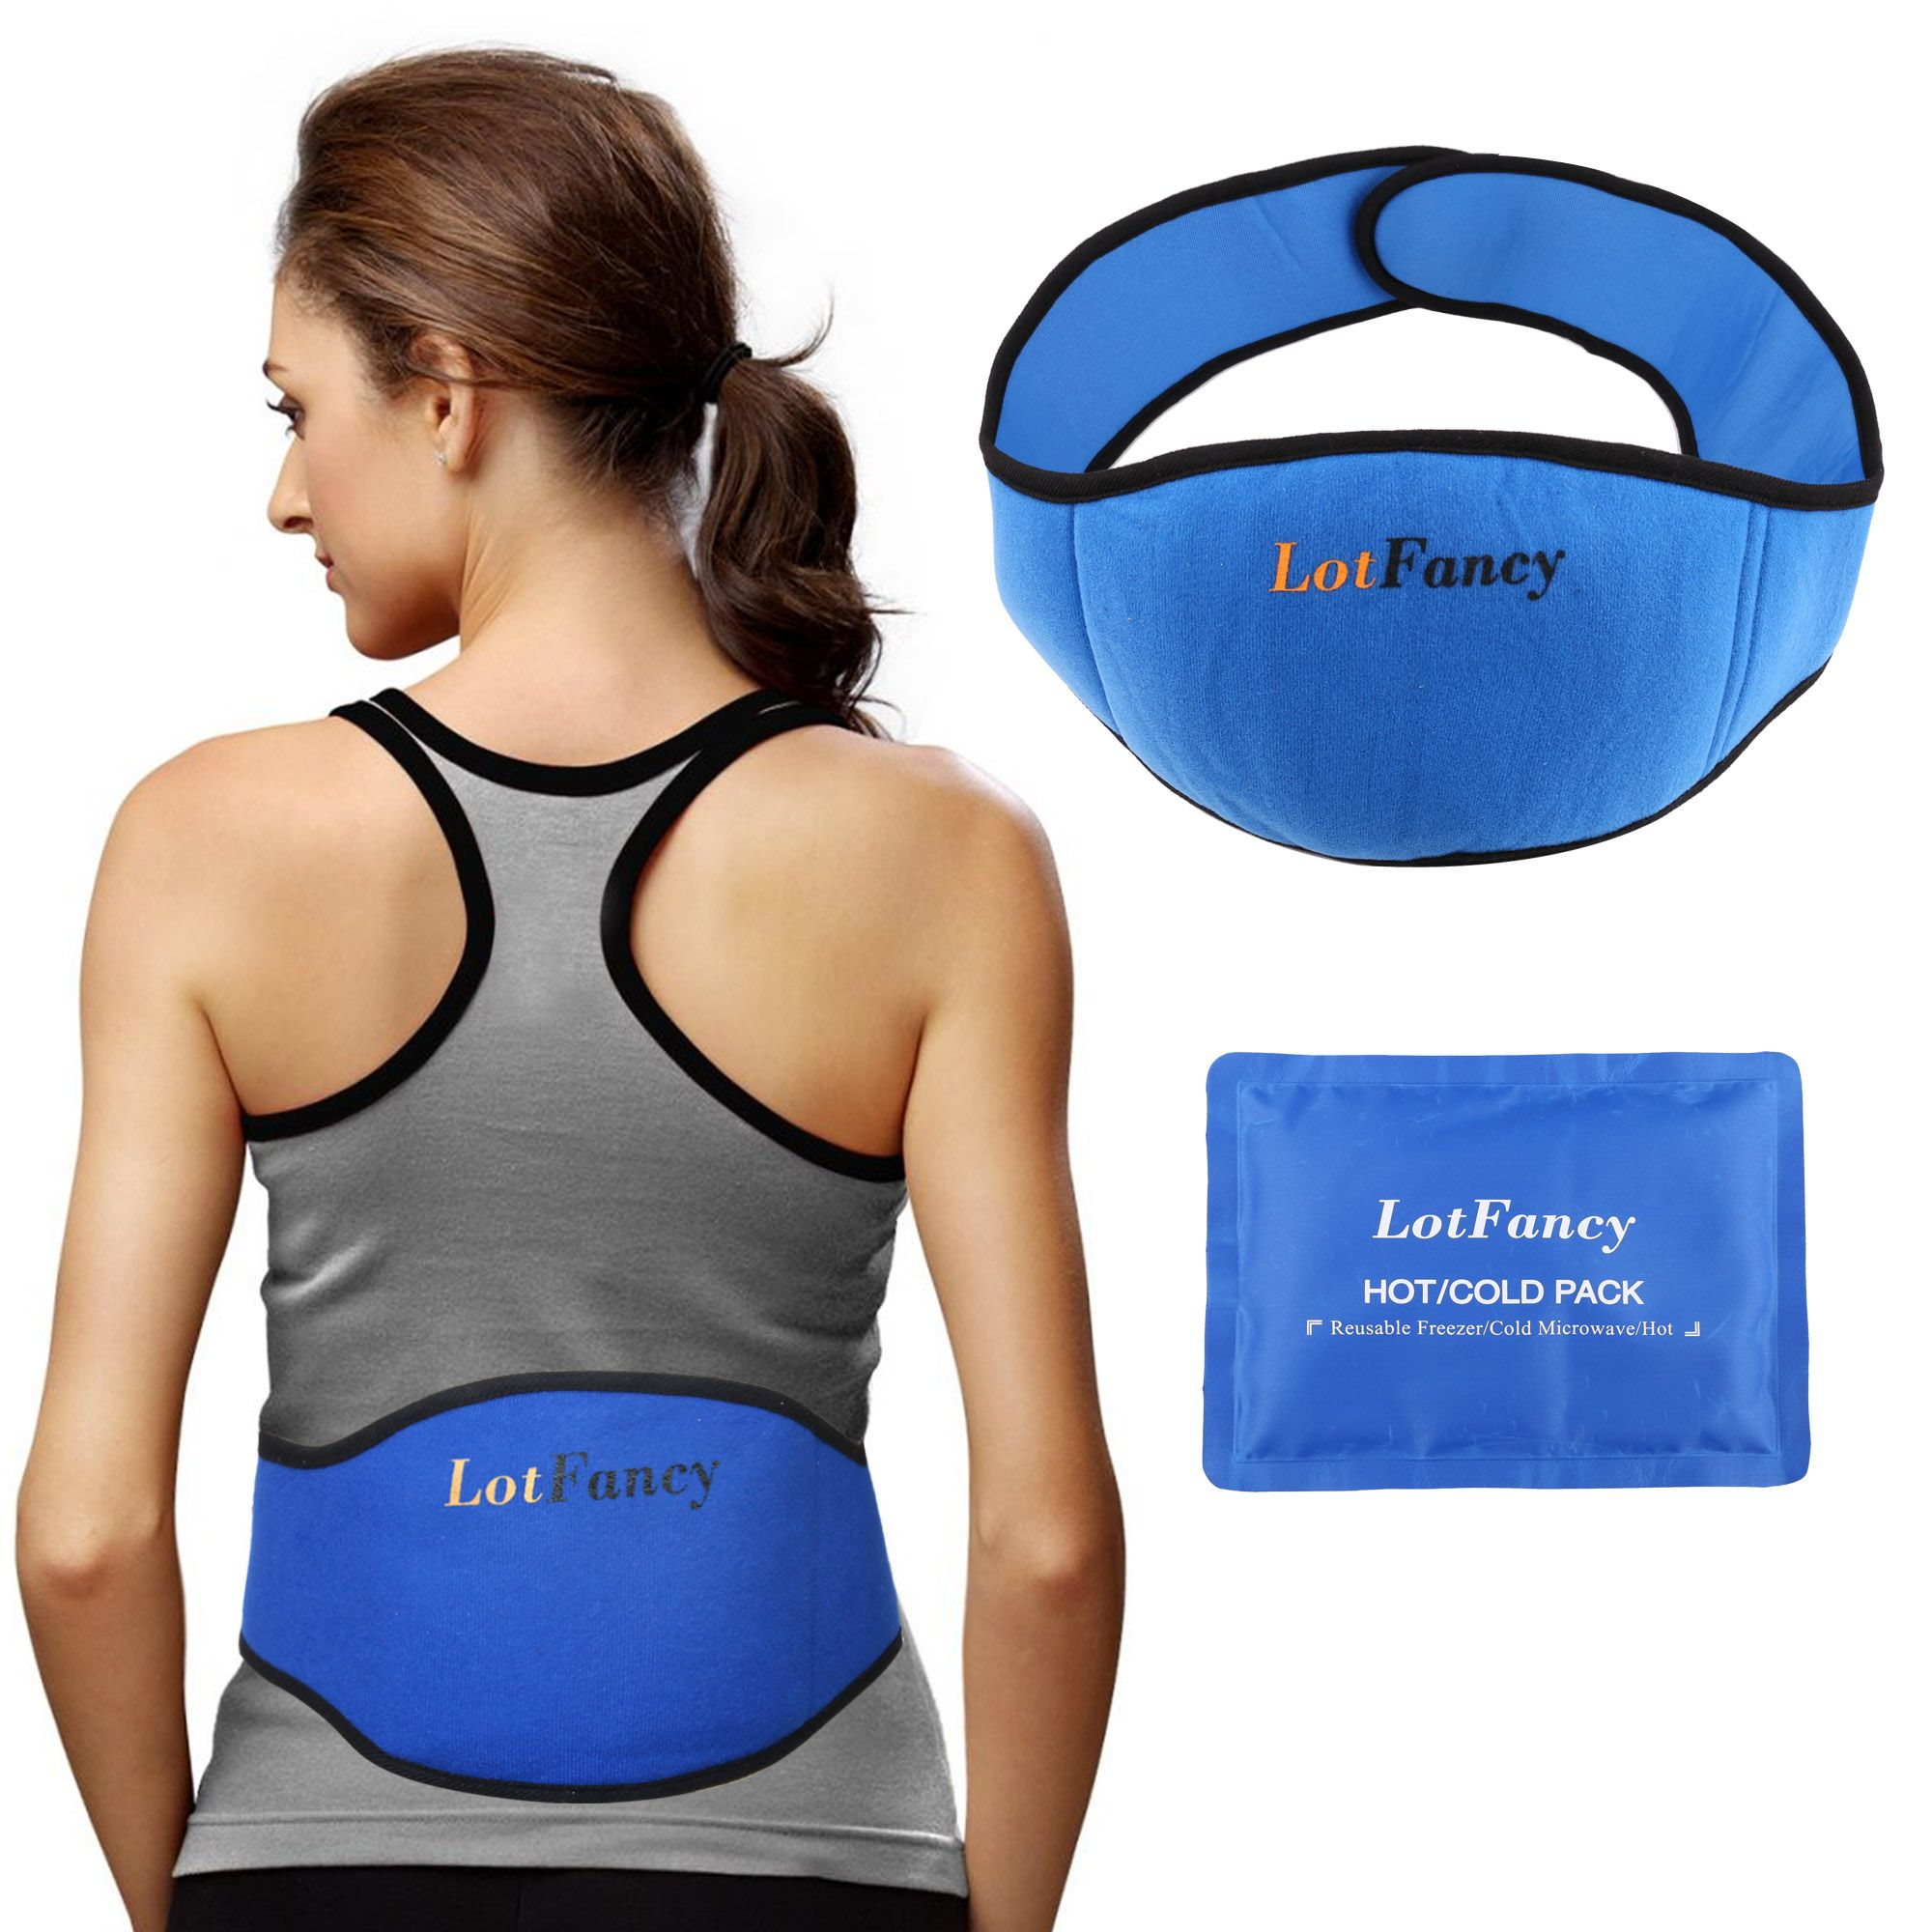 hot cold packs with wrap for waist microwavable reusable gel pack with hook and loop fastener wrap belt 8 x 5 5 inches walmart com